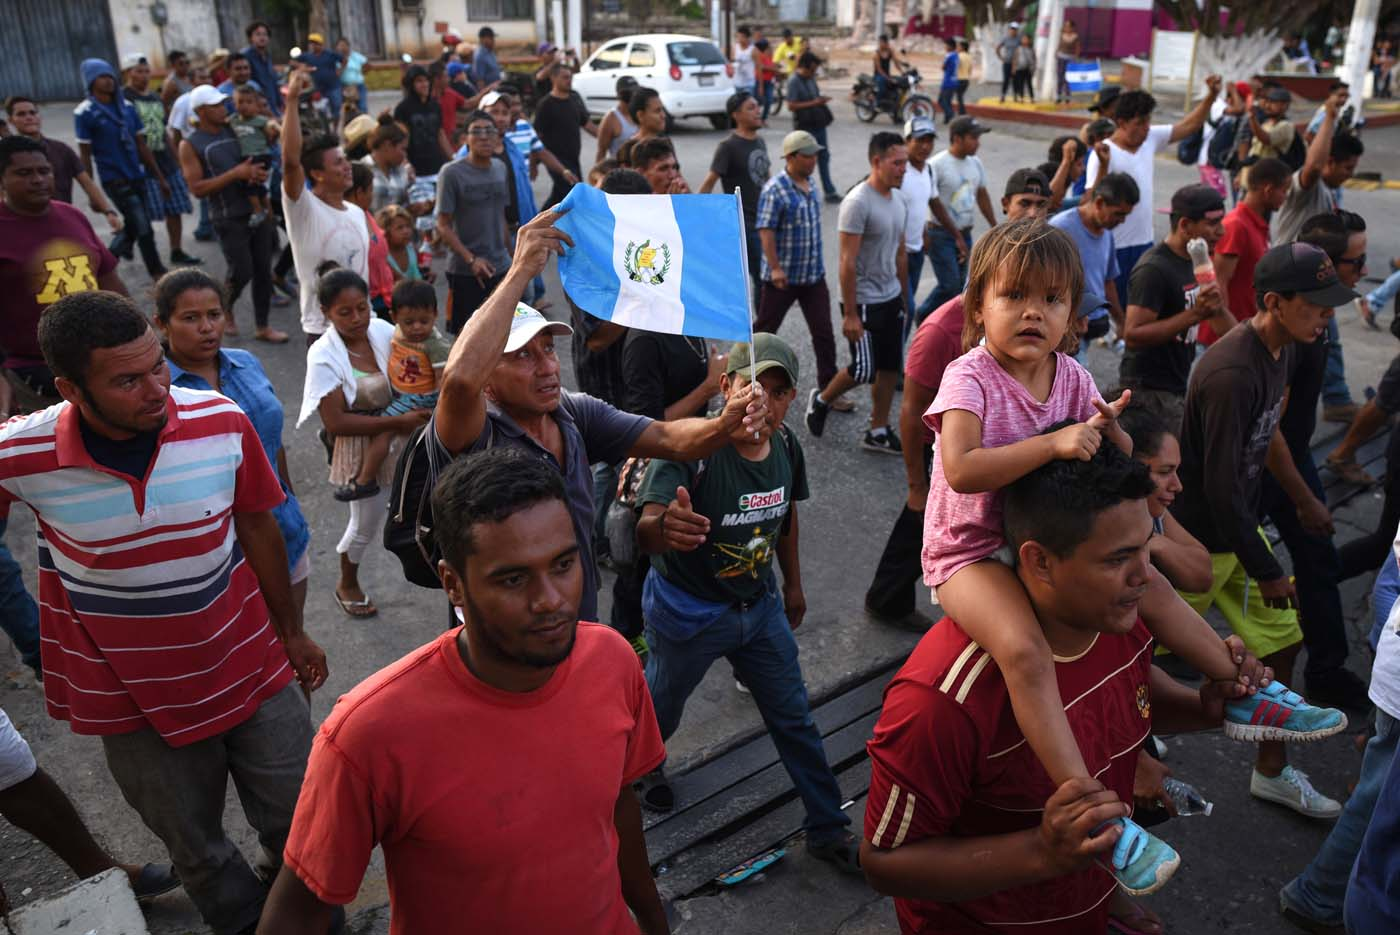 """A migrant -alongside other Central Americans taking part in a caravan called """"Migrant Viacrucis"""" towards the United States- holds a Guatemalan national flag during a march to protest against US President Donald Trump's policies in Matias Romero, Oaxaca State, Mexico, on April 3, 2018. The hundreds of Central Americans in the """"Way of the Cross"""" migrant caravan have infuriated Trump, but they are not moving very fast -- if at all -- and remain far from the US border. As Trump vowed Tuesday to send troops to secure the southern US border, the caravan was camped out for the third straight day in the town of Matias Romero, in southern Mexico, more than 3,000 kilometers (1,800 miles) from the United States. / AFP PHOTO / VICTORIA RAZO"""